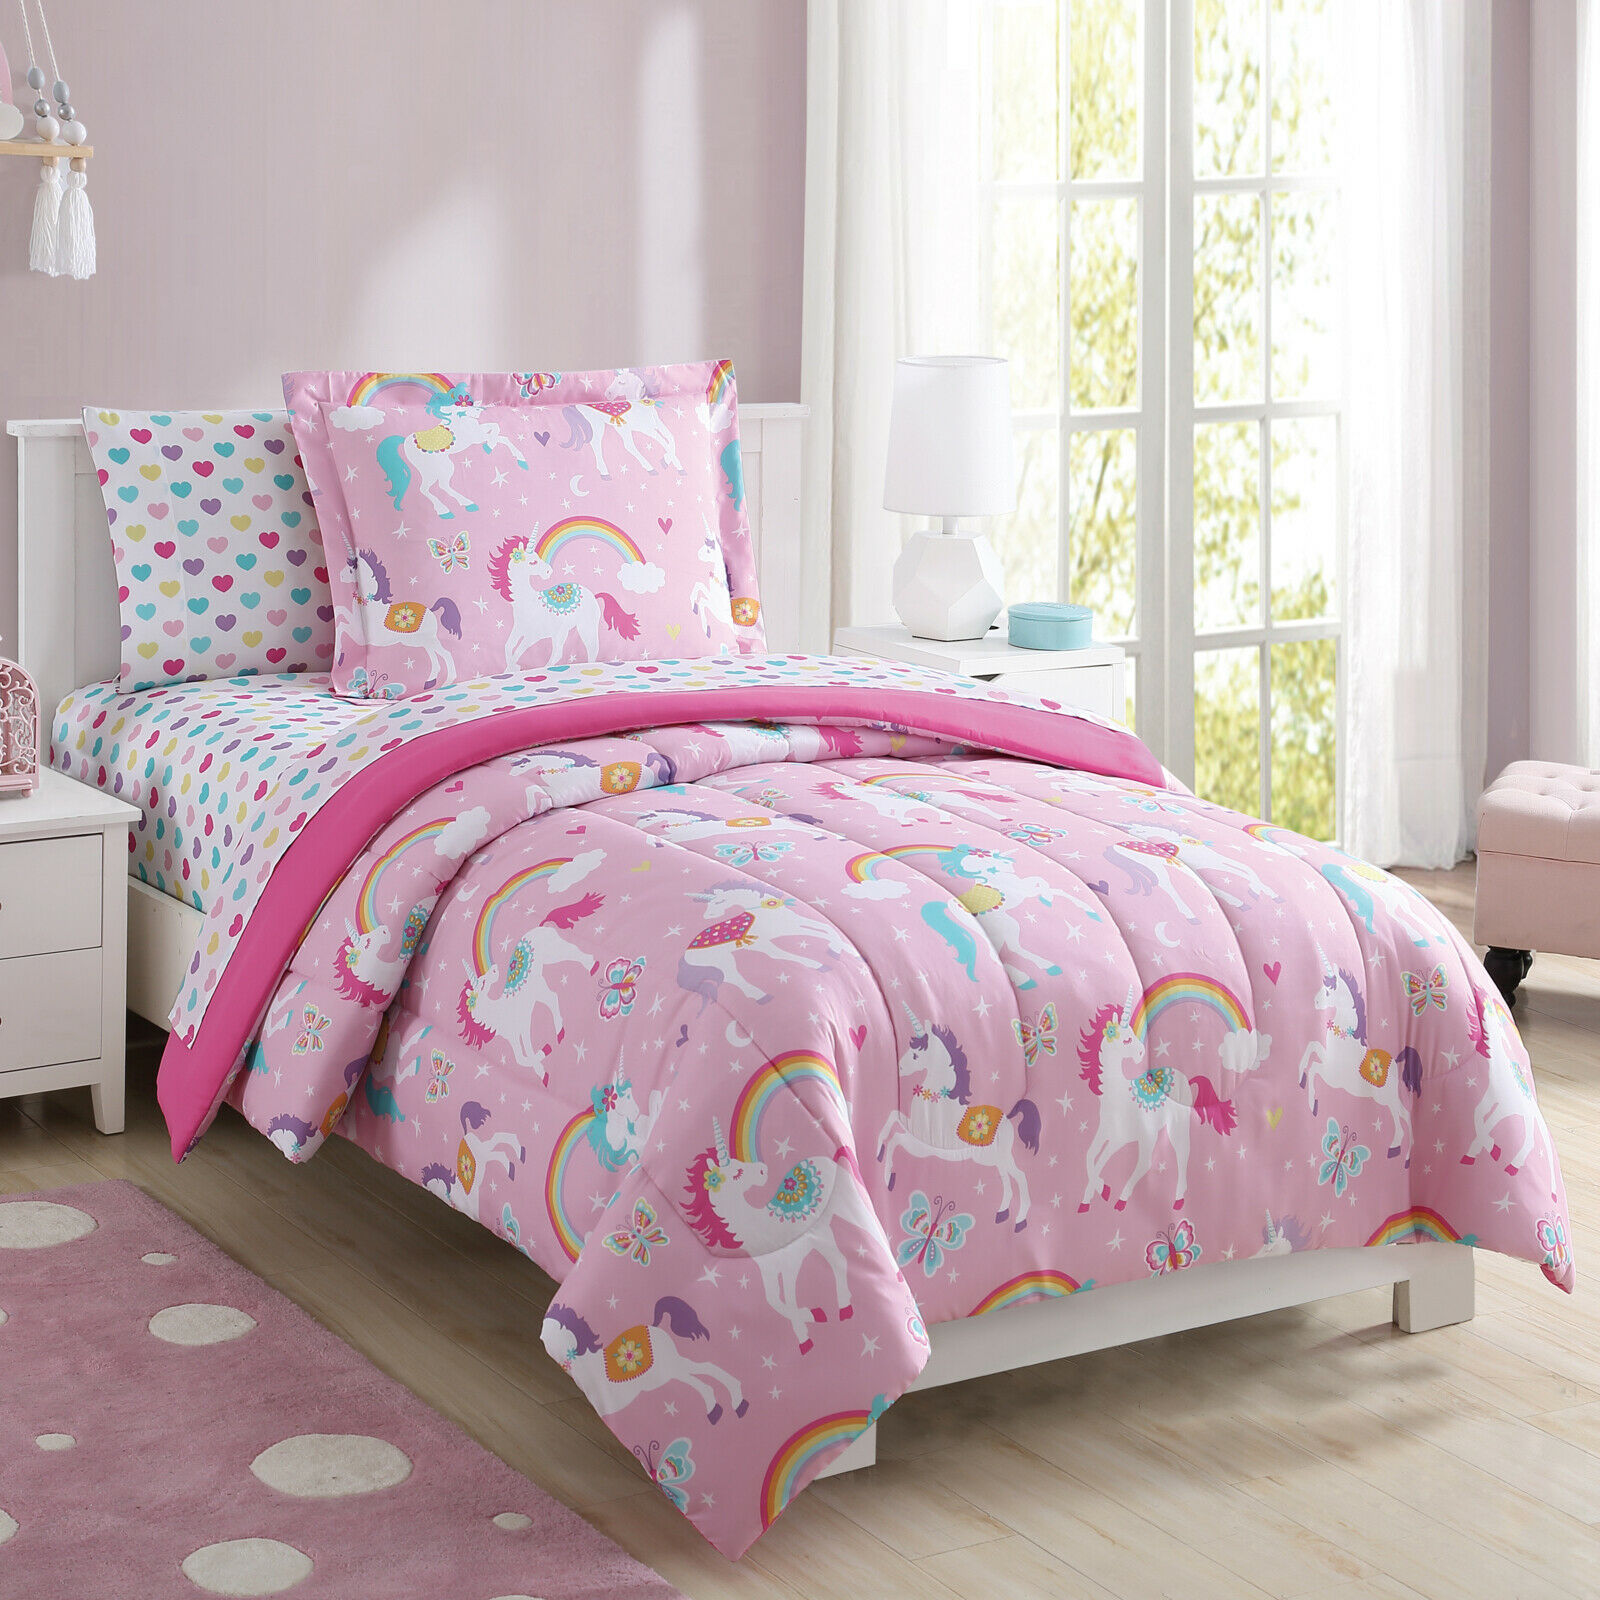 Picture of: Bed In A Bag Bedding Set Kids Girls Bedroom Decor Rainbow Unicorn Full Size New 81806396658 Ebay